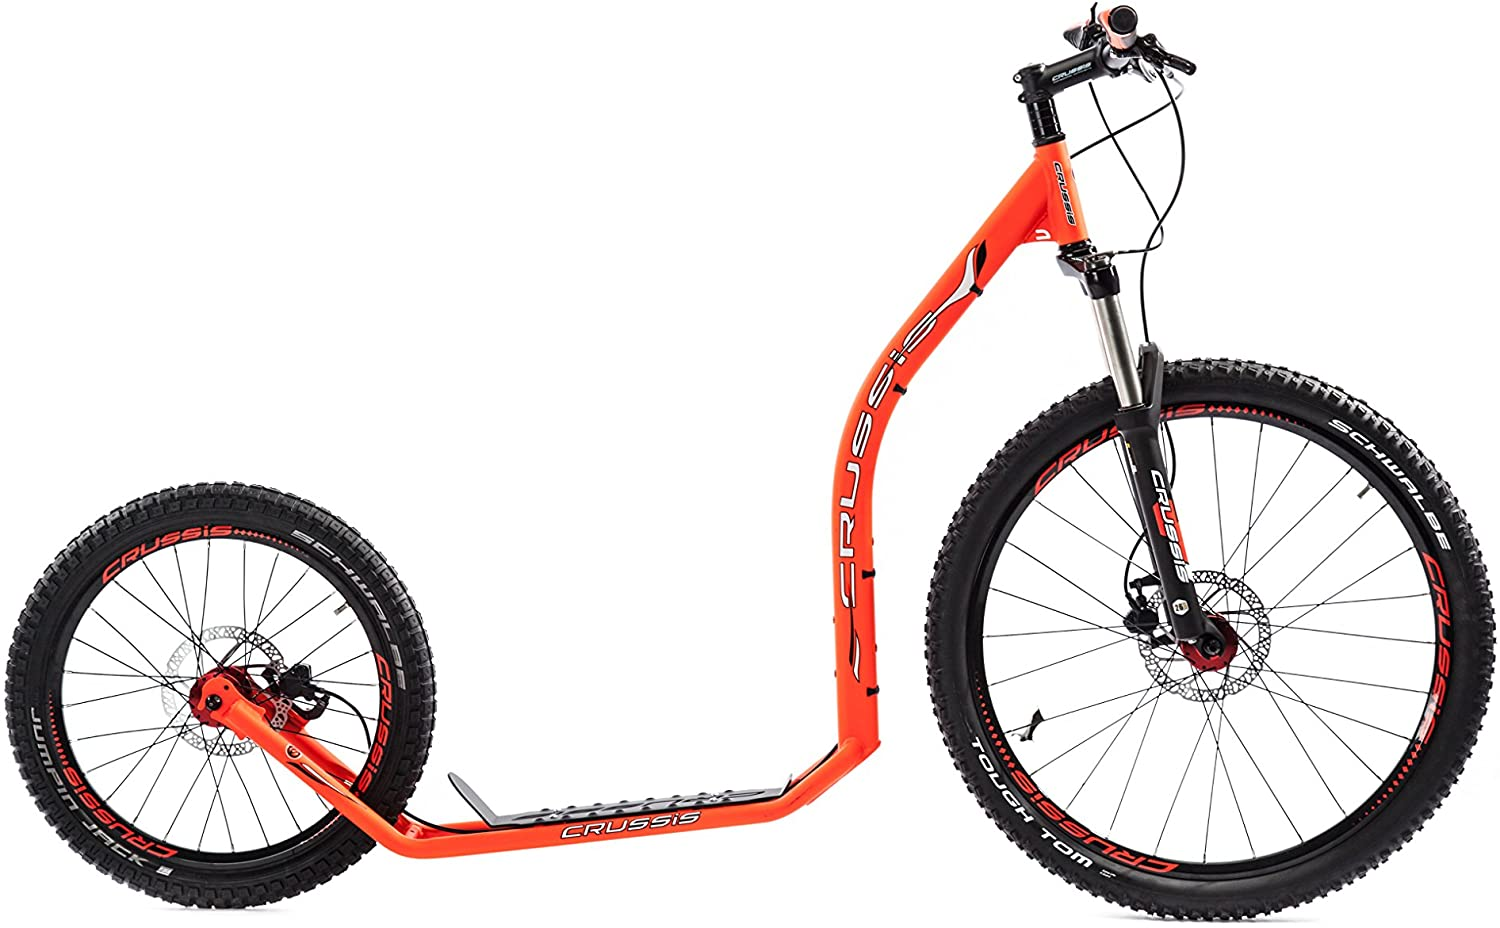 CRUSSIS CROSS TRETROLLER 6.1 ORANGE 26/20 HD